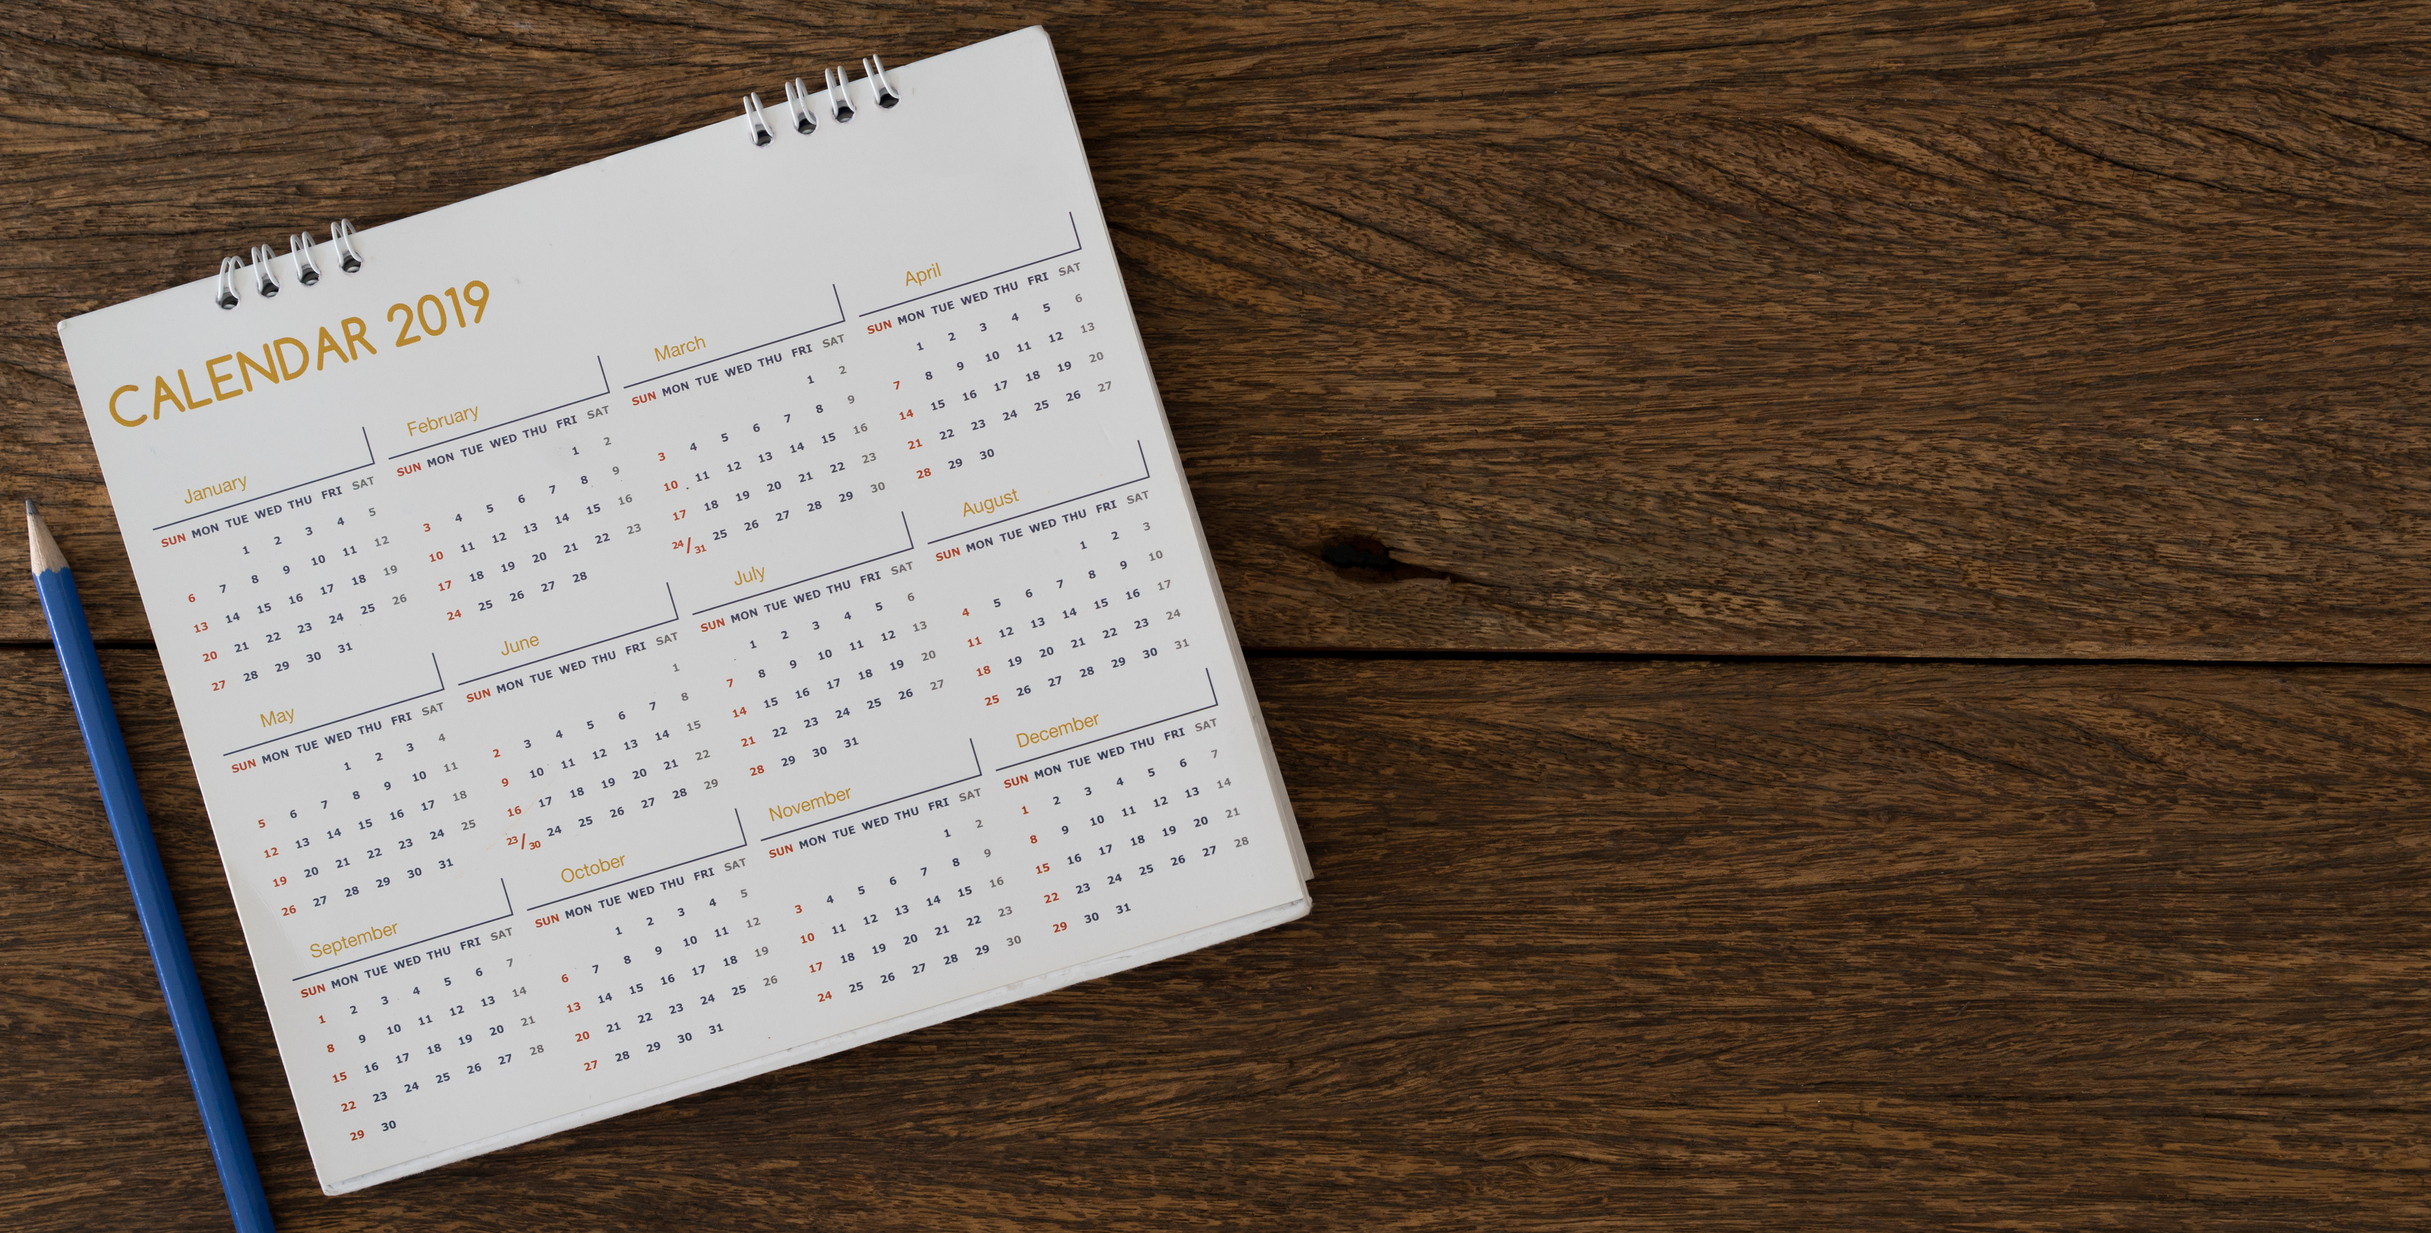 Top 11 Free Calendar Tools to Use in 2019